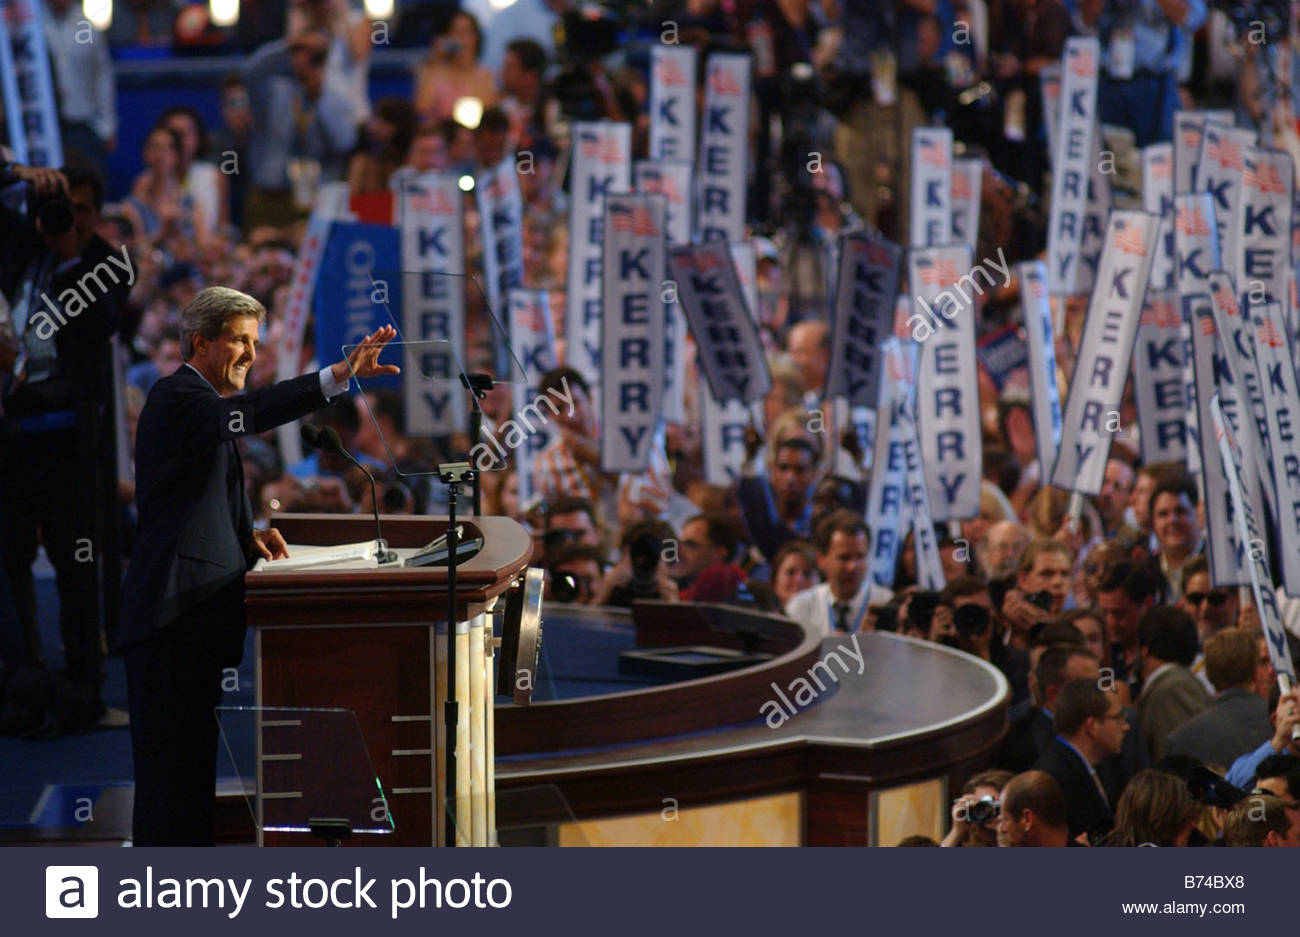 7 26 04 2004 DEMOCRATIC NATIONAL CONVENTION Presidential nominee John Kerry acknowledges the crowd during his acceptance - Stock Image